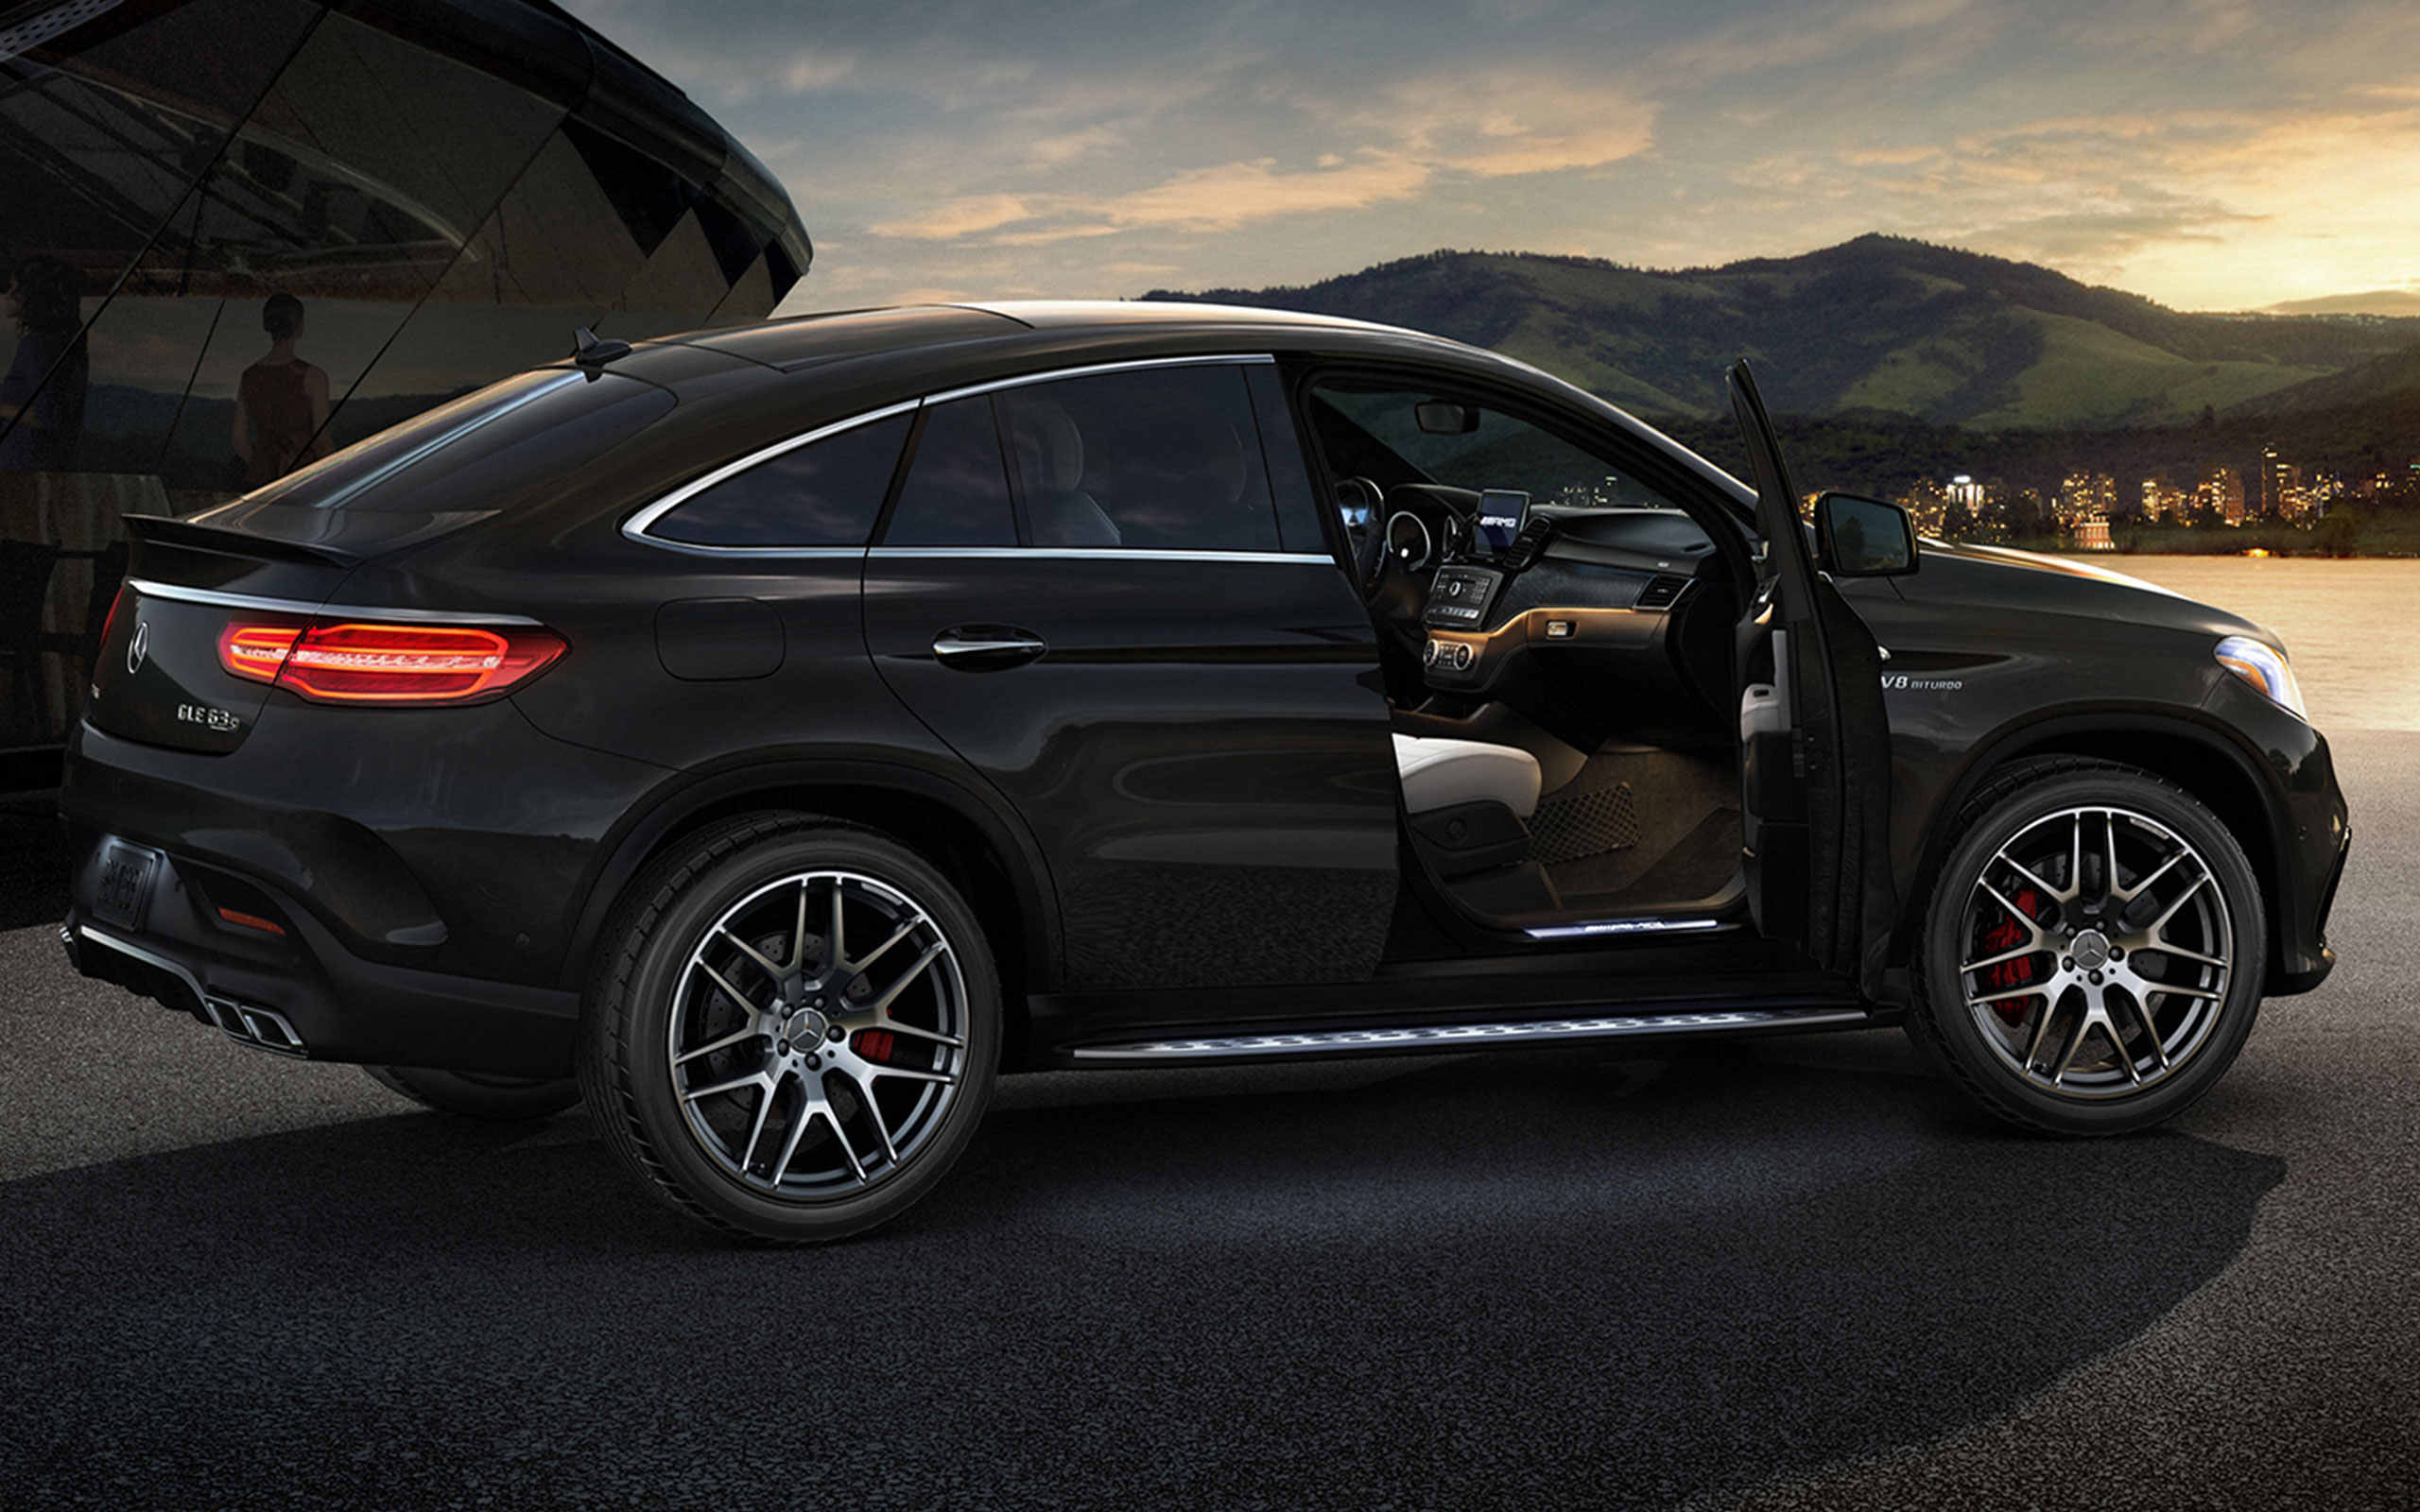 https://assets.mbusa.com/vcm/MB/DigitalAssets/Vehicles/ClassLanding/2018/GLE/Coupe/AMG/GALLERY/2018-GLE-COUPE-AMG-GALLERY-001-SET-P-WP.jpg